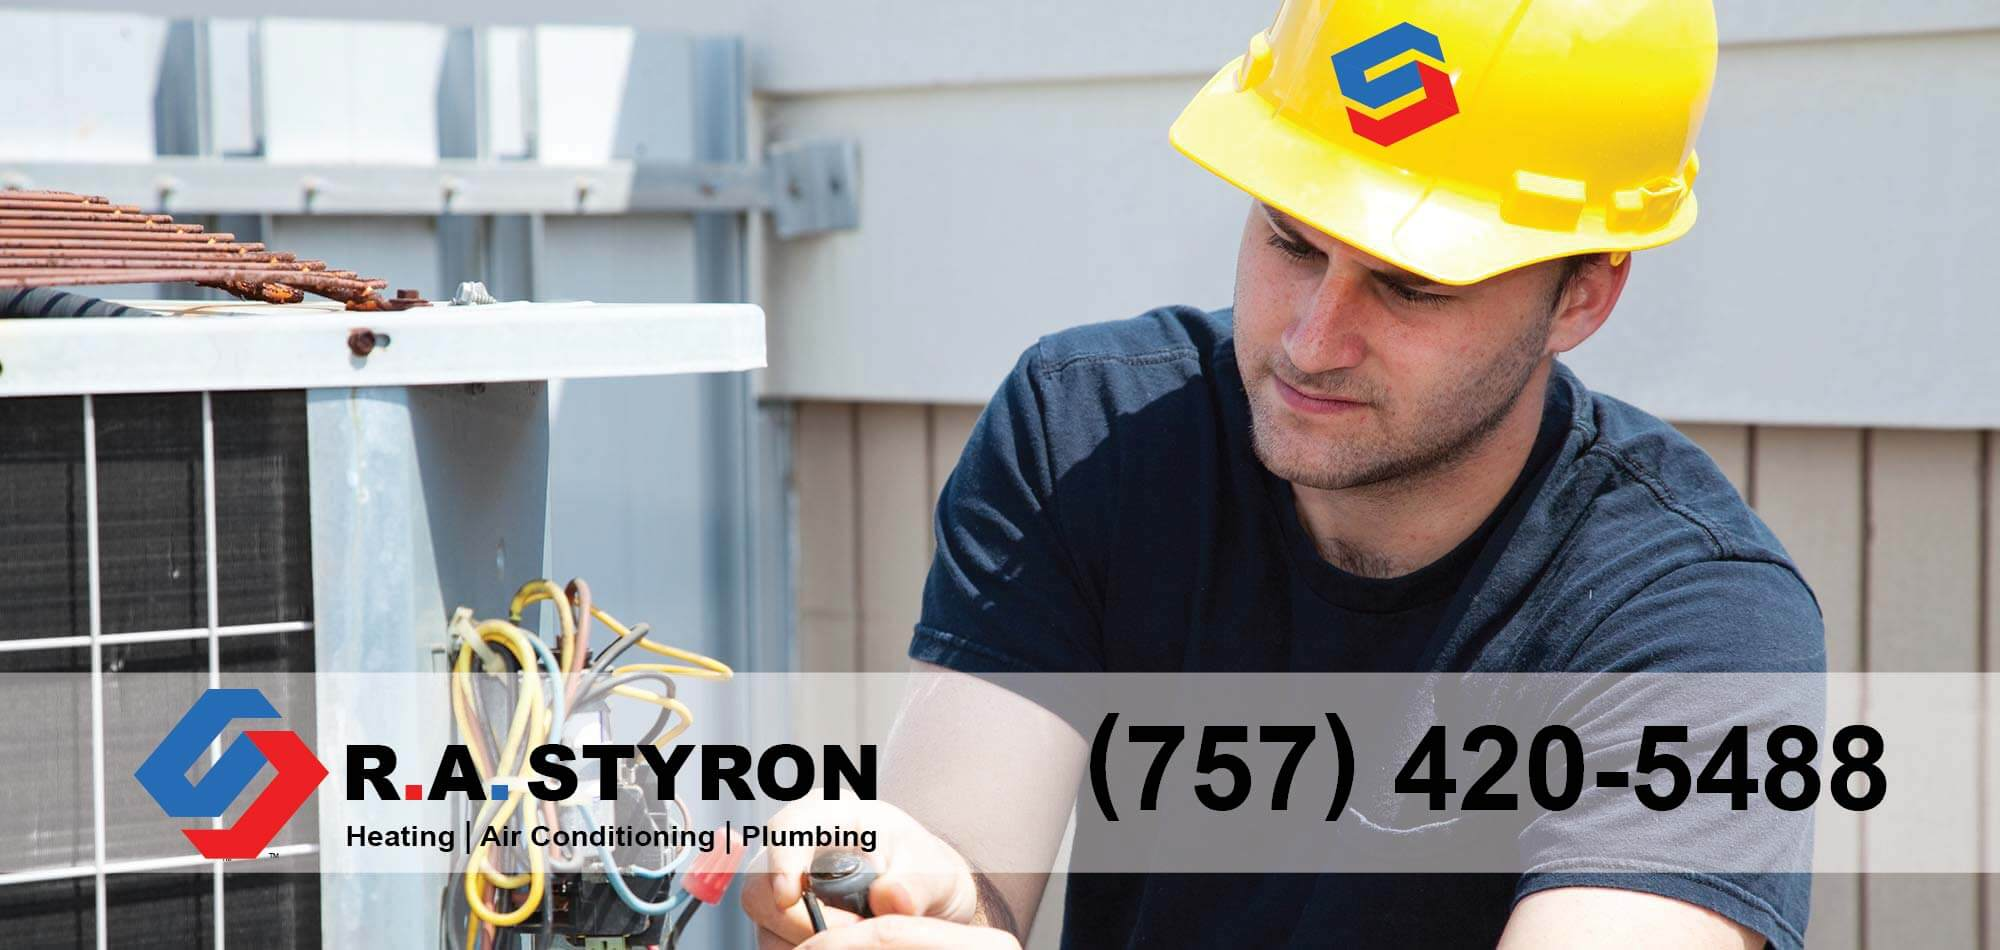 R.A. STYRON Heating Air Conditioning Plumbing